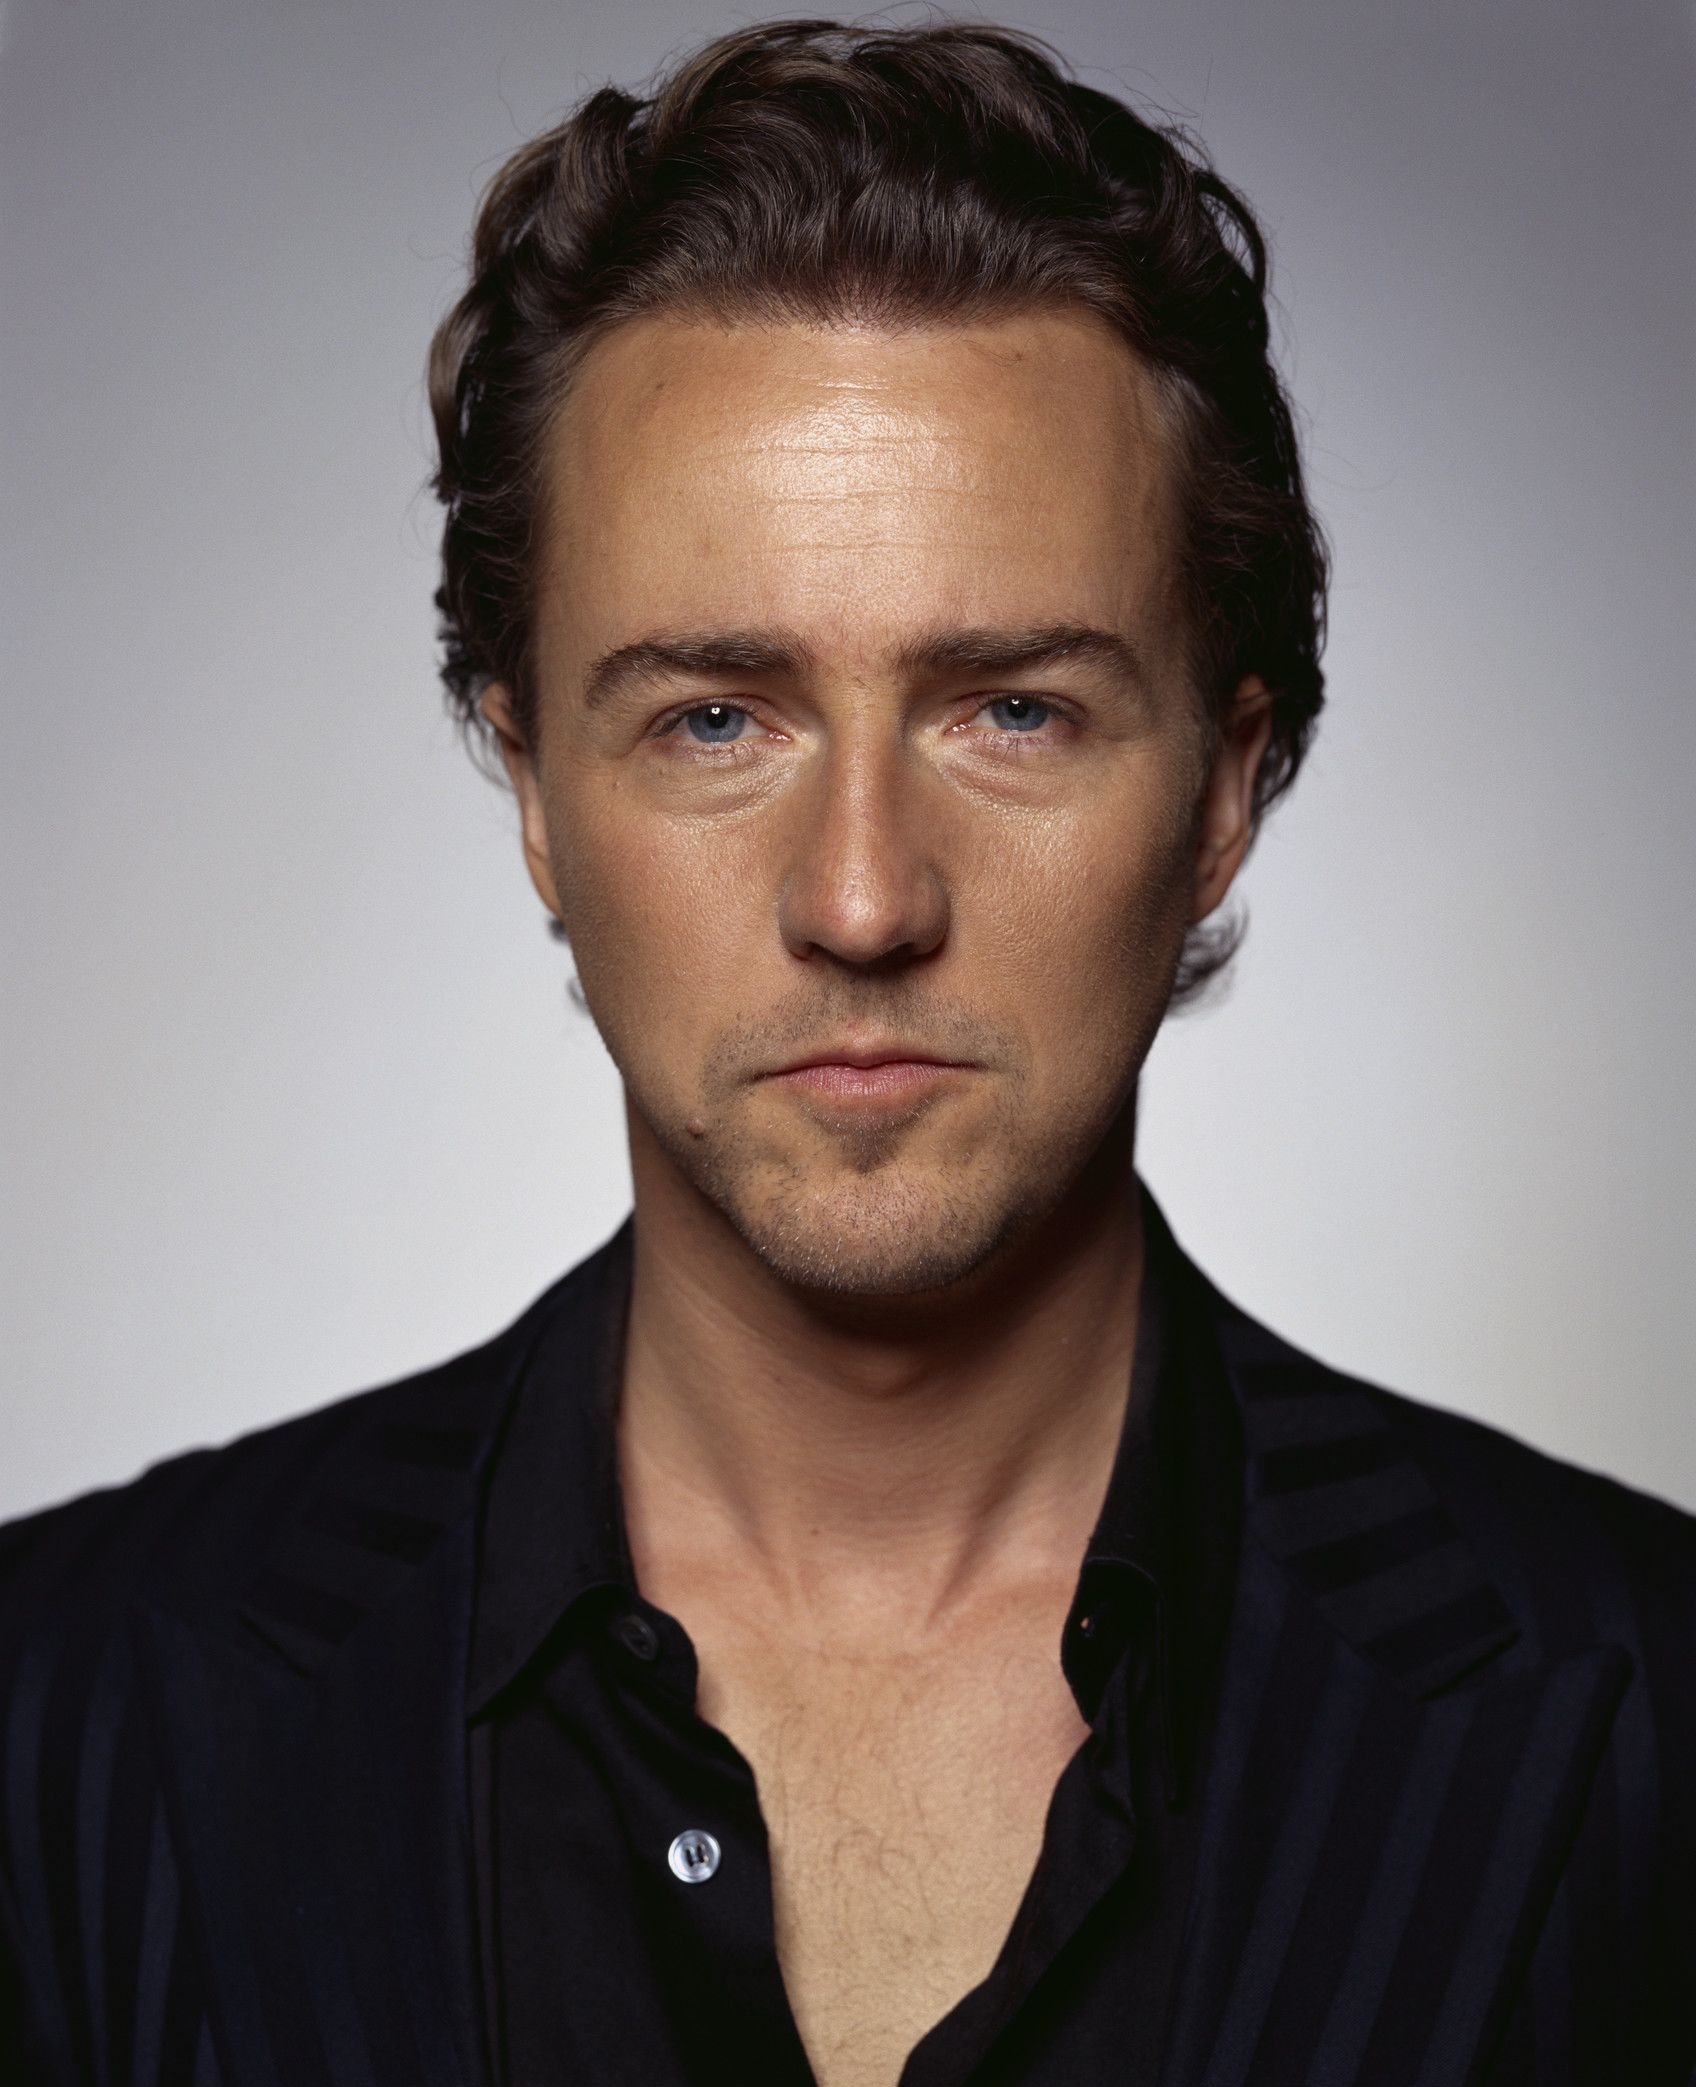 Edward Norton - Glen WIlson Shoot - Edward Norton Photo ...